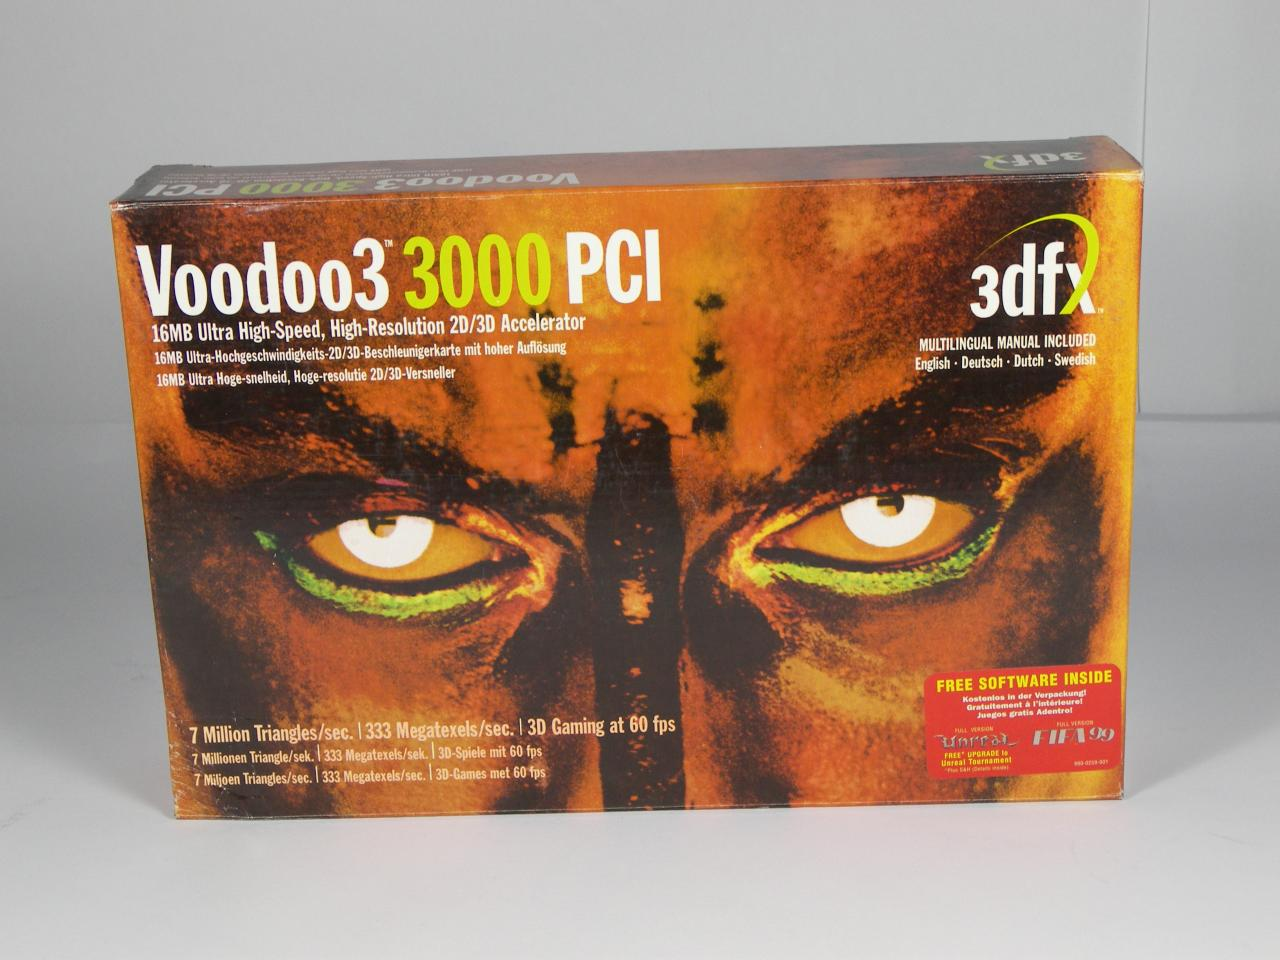 [03/09/08] A graphics card normally comes in a box. Those packages often have an impressive design in order to attract customers' attention. PCGH presents some real classics. Among them: The Voodoo 5 and the Matrox G200. - 3dfx Voodoo 3 3000